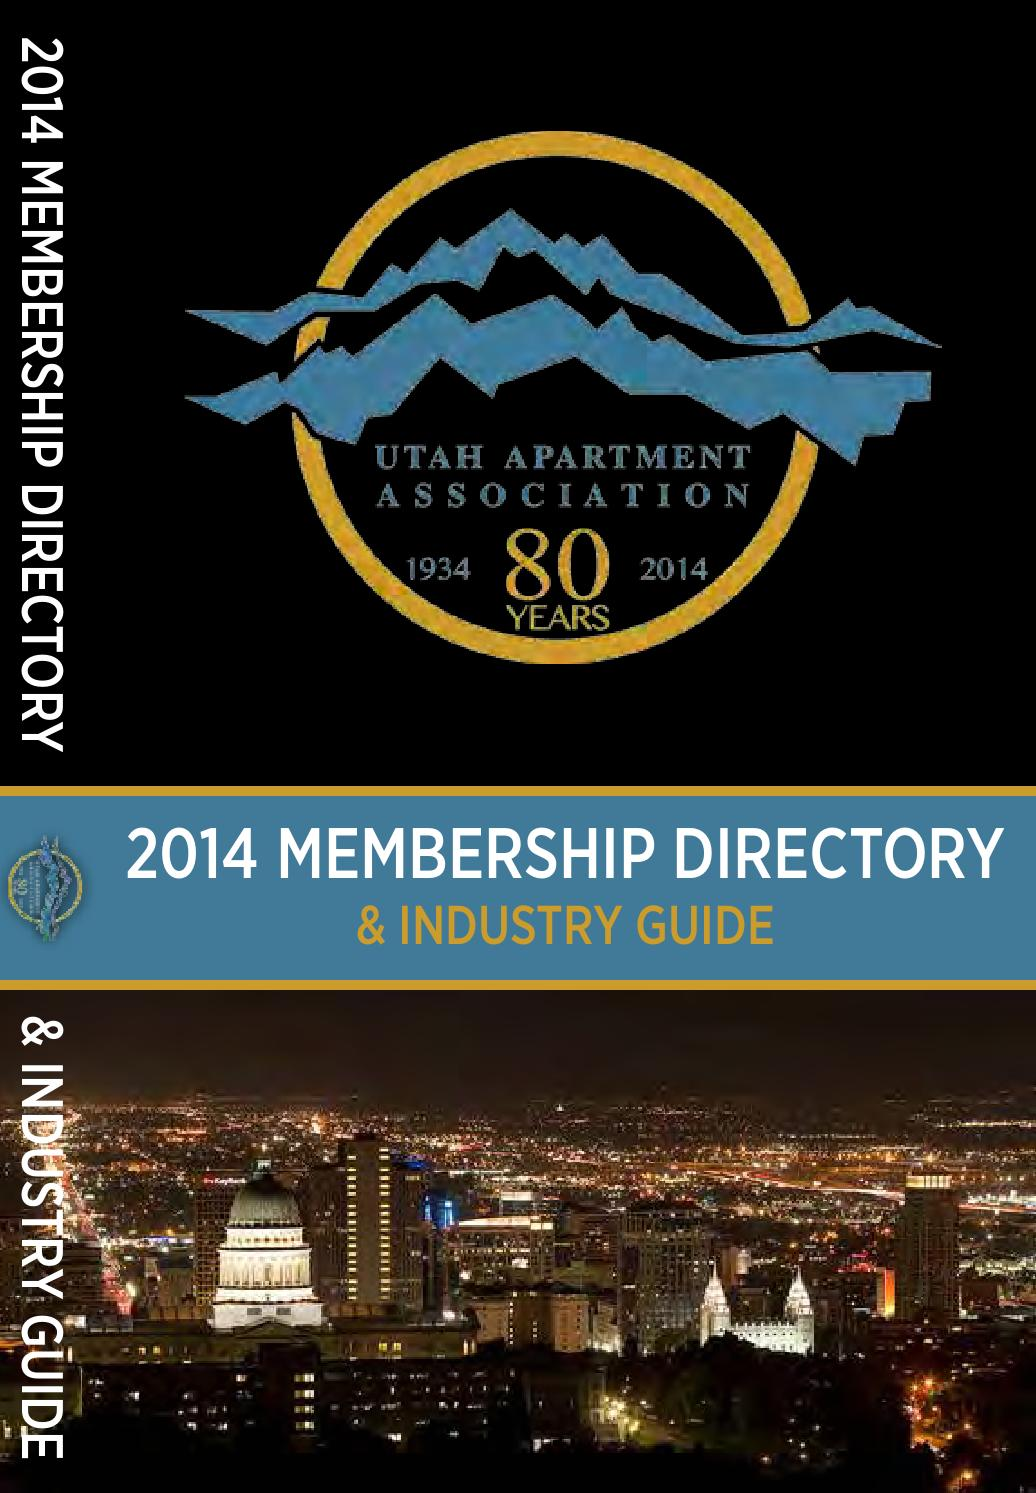 2014 Utah Apartment Association Directory Industry Guide By Charles Jourdan 1005 2312 Silver Professional Publishing Inc Issuu